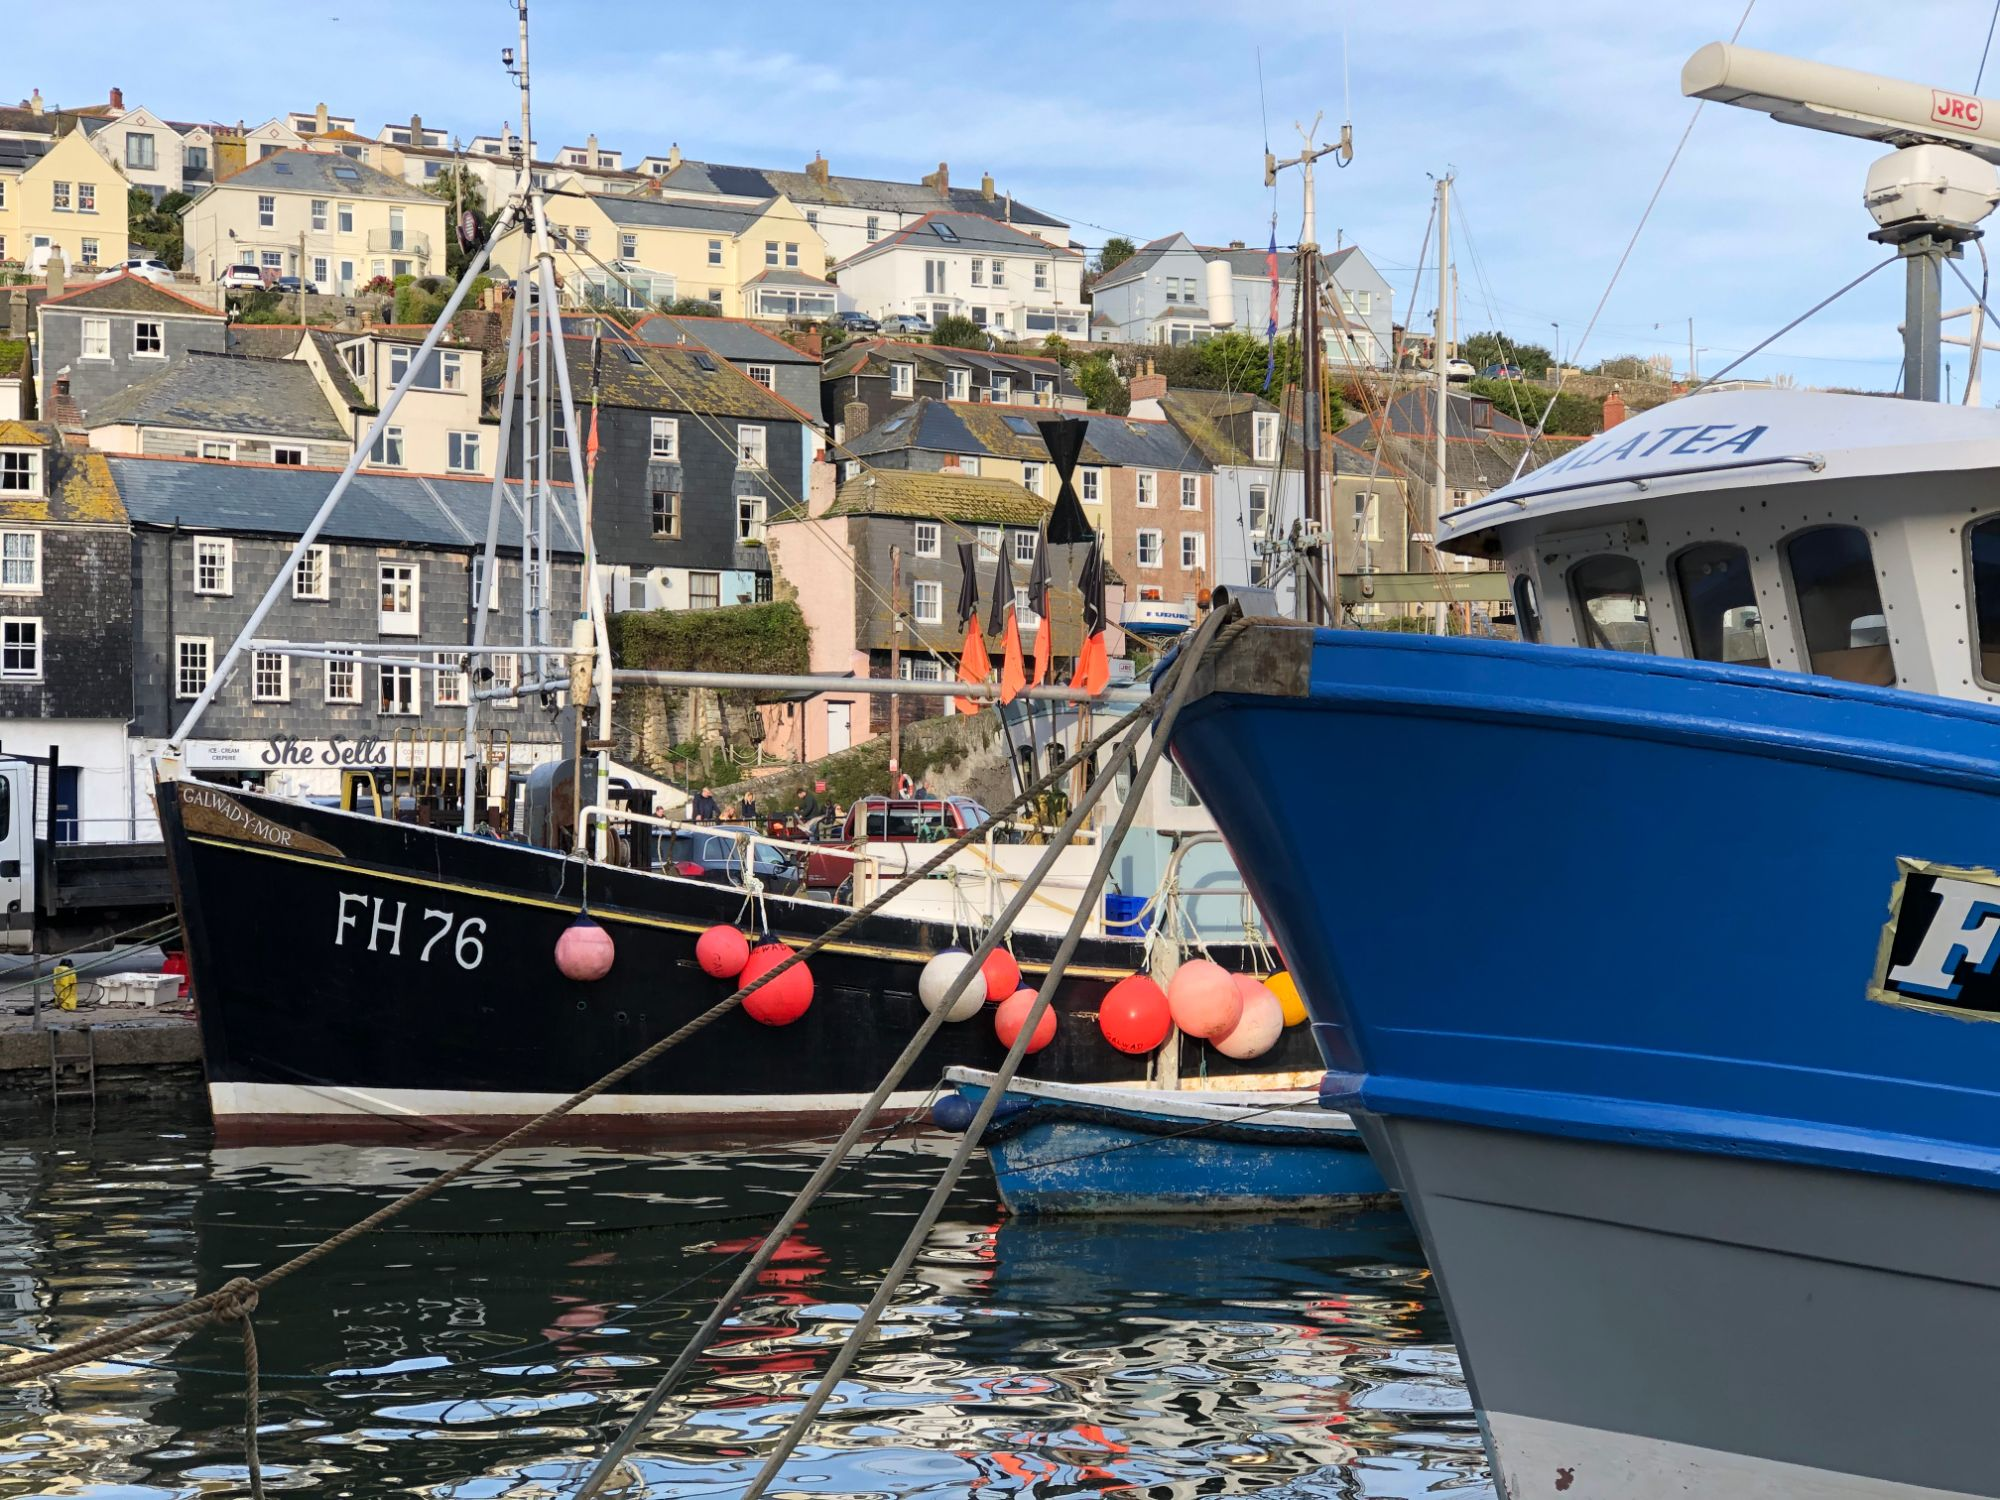 Free stock photo Mevagissey Cornwall fishing boats harbour